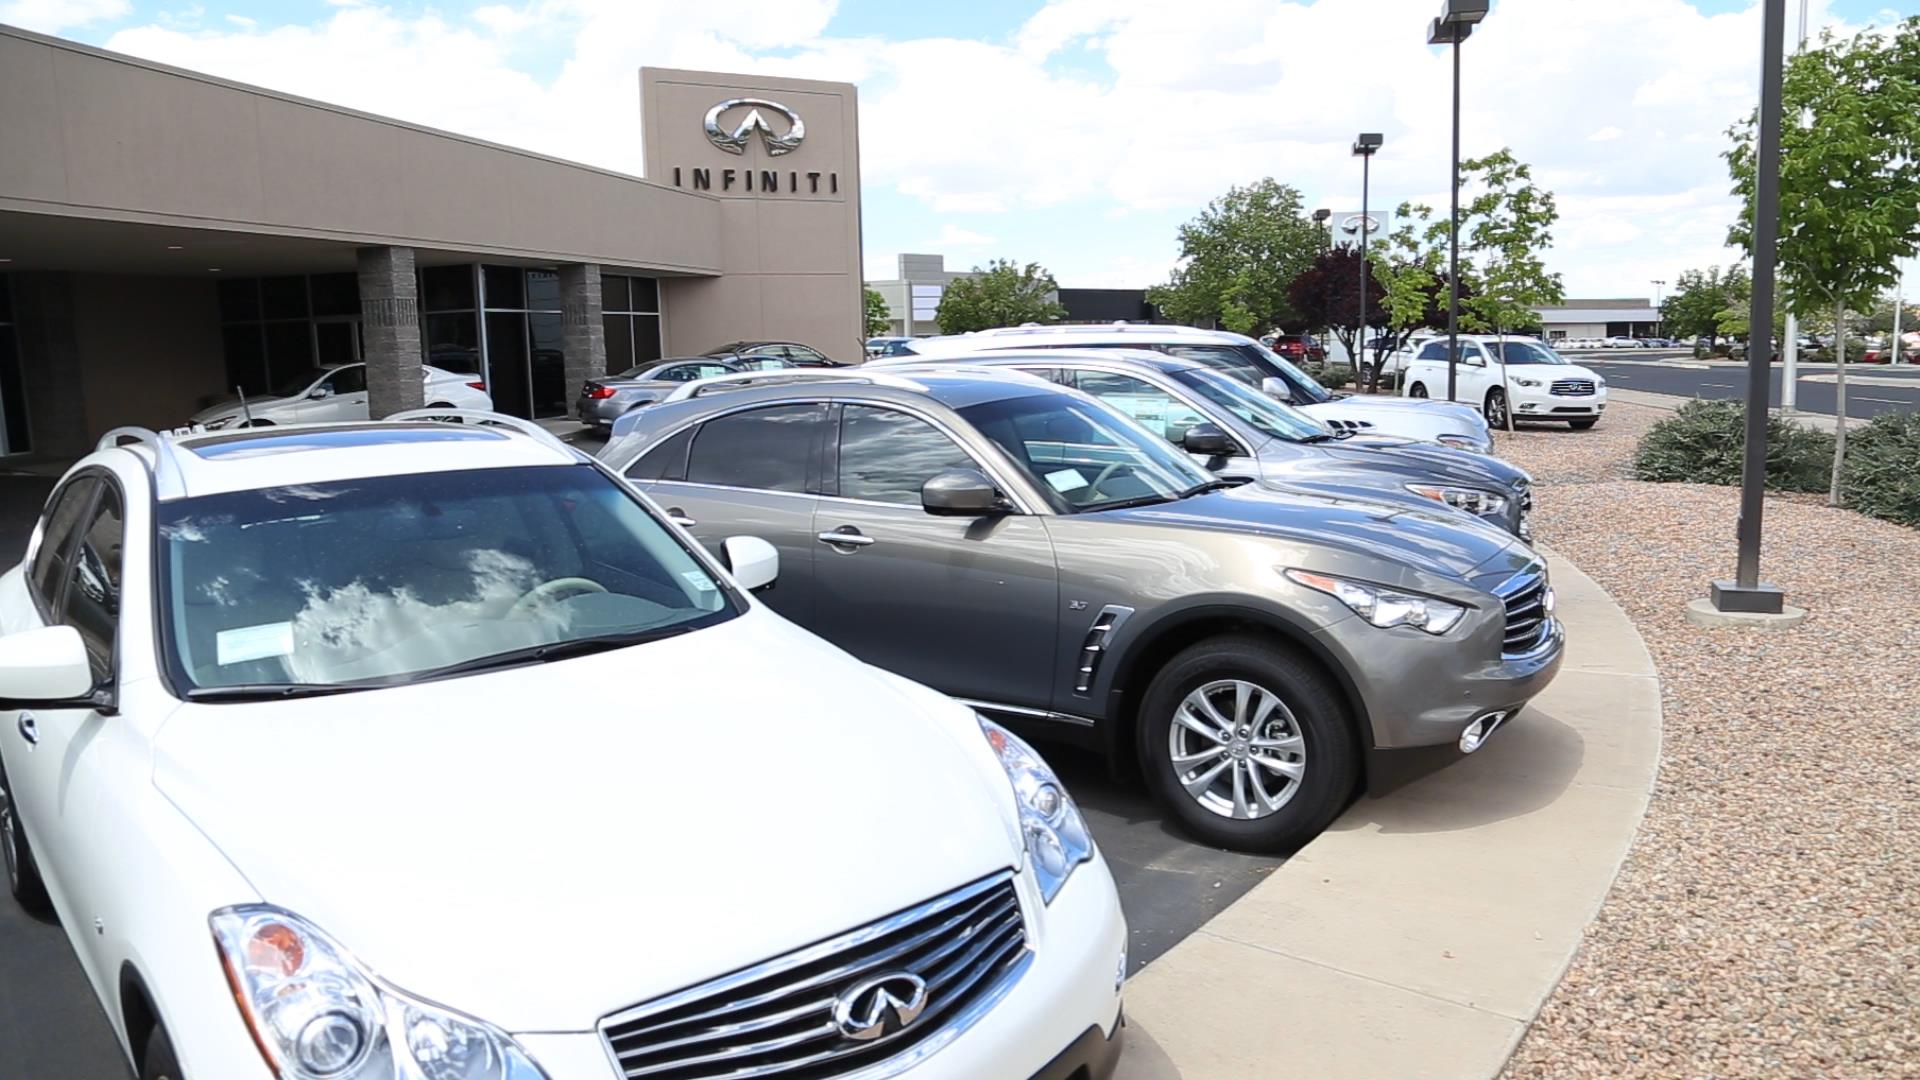 to know our new infiniti dealership serving albuquerque rio rancho bernalillo and santa fe